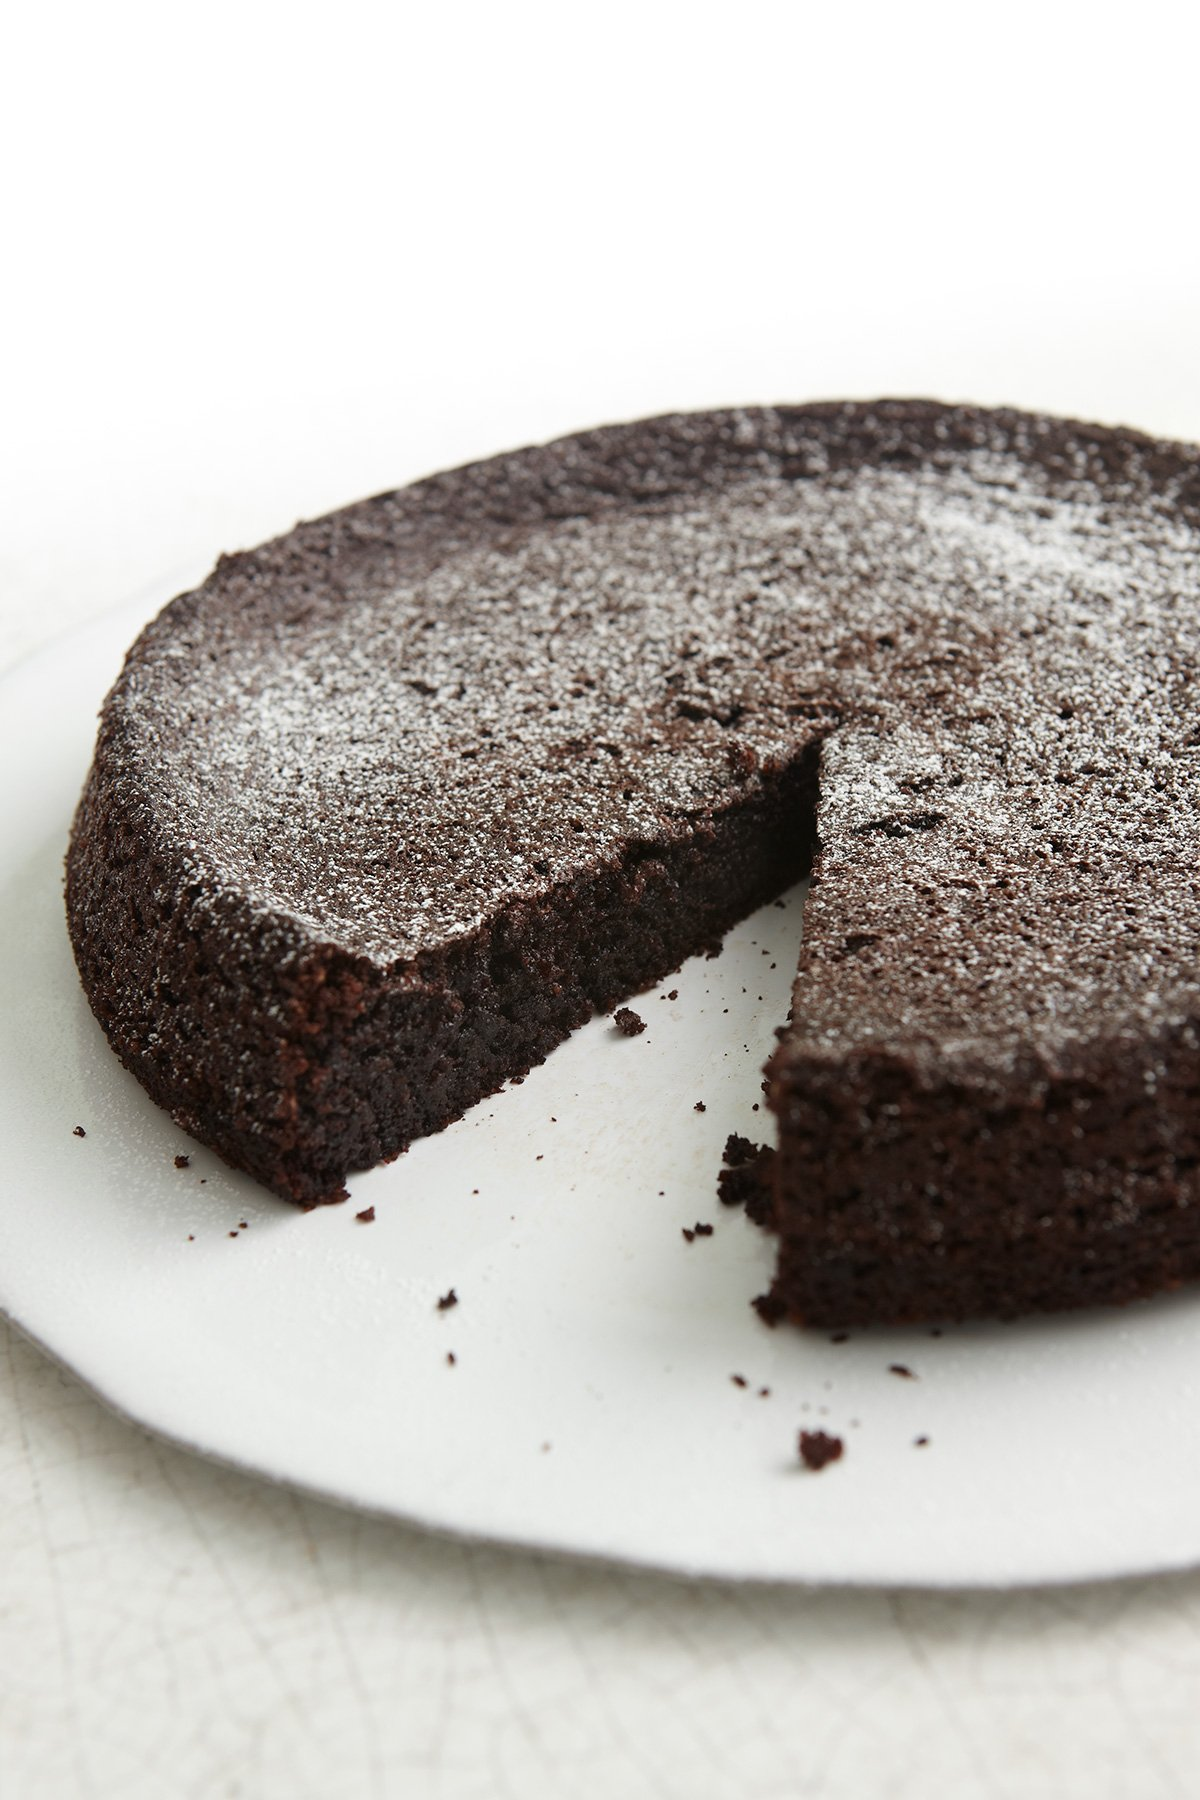 Coconut Oil Flourless Chocolate Cake